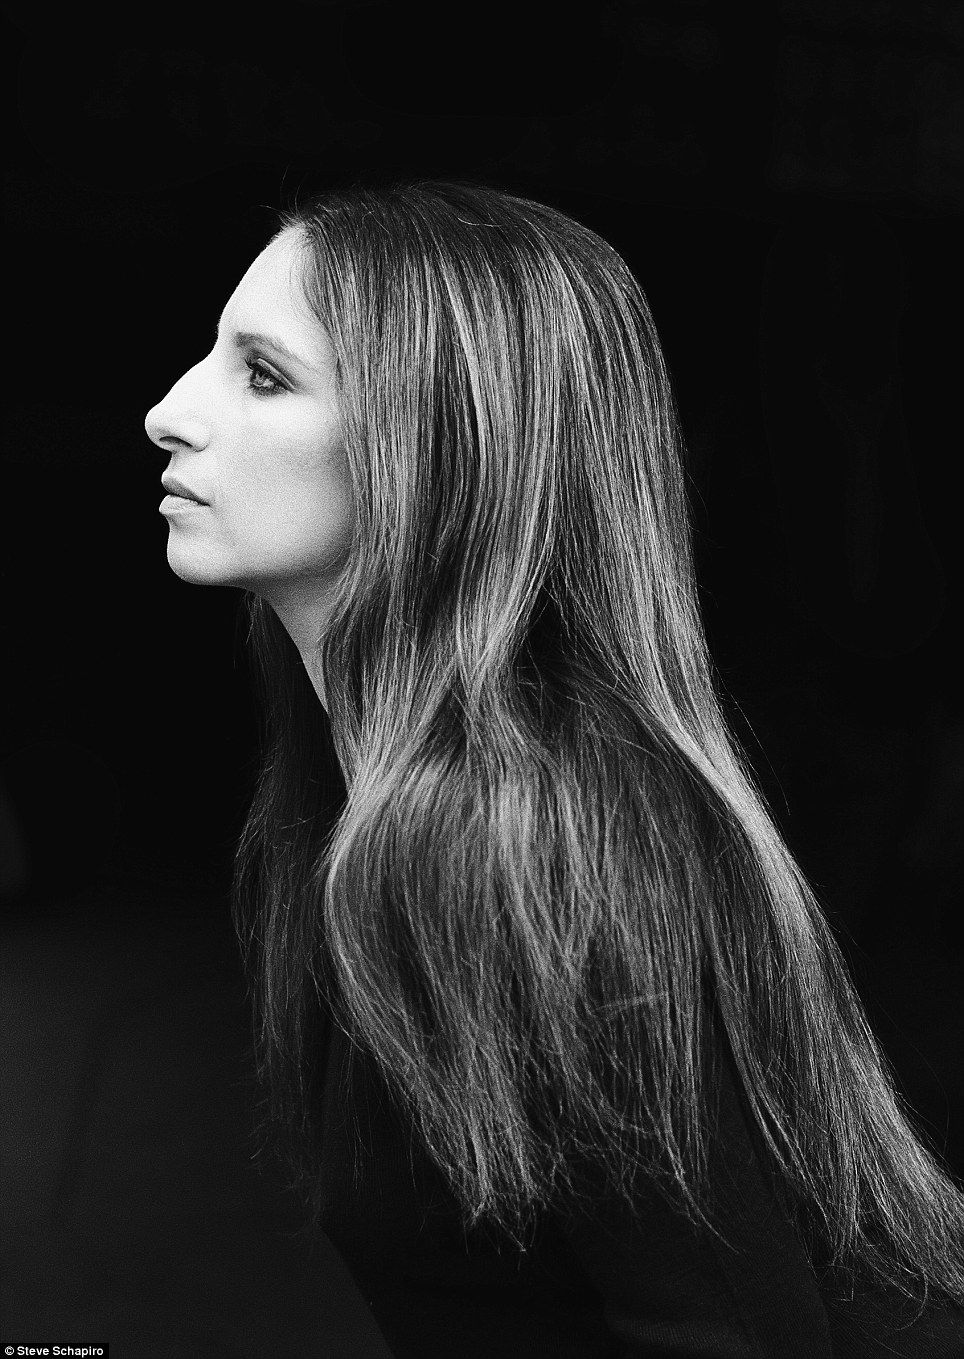 A Cool Customer The Stunning Collection Of Never Published Pictures From Legendary American Photographer Steve Schapiro Barbra Streisand Famous Faces Portrait